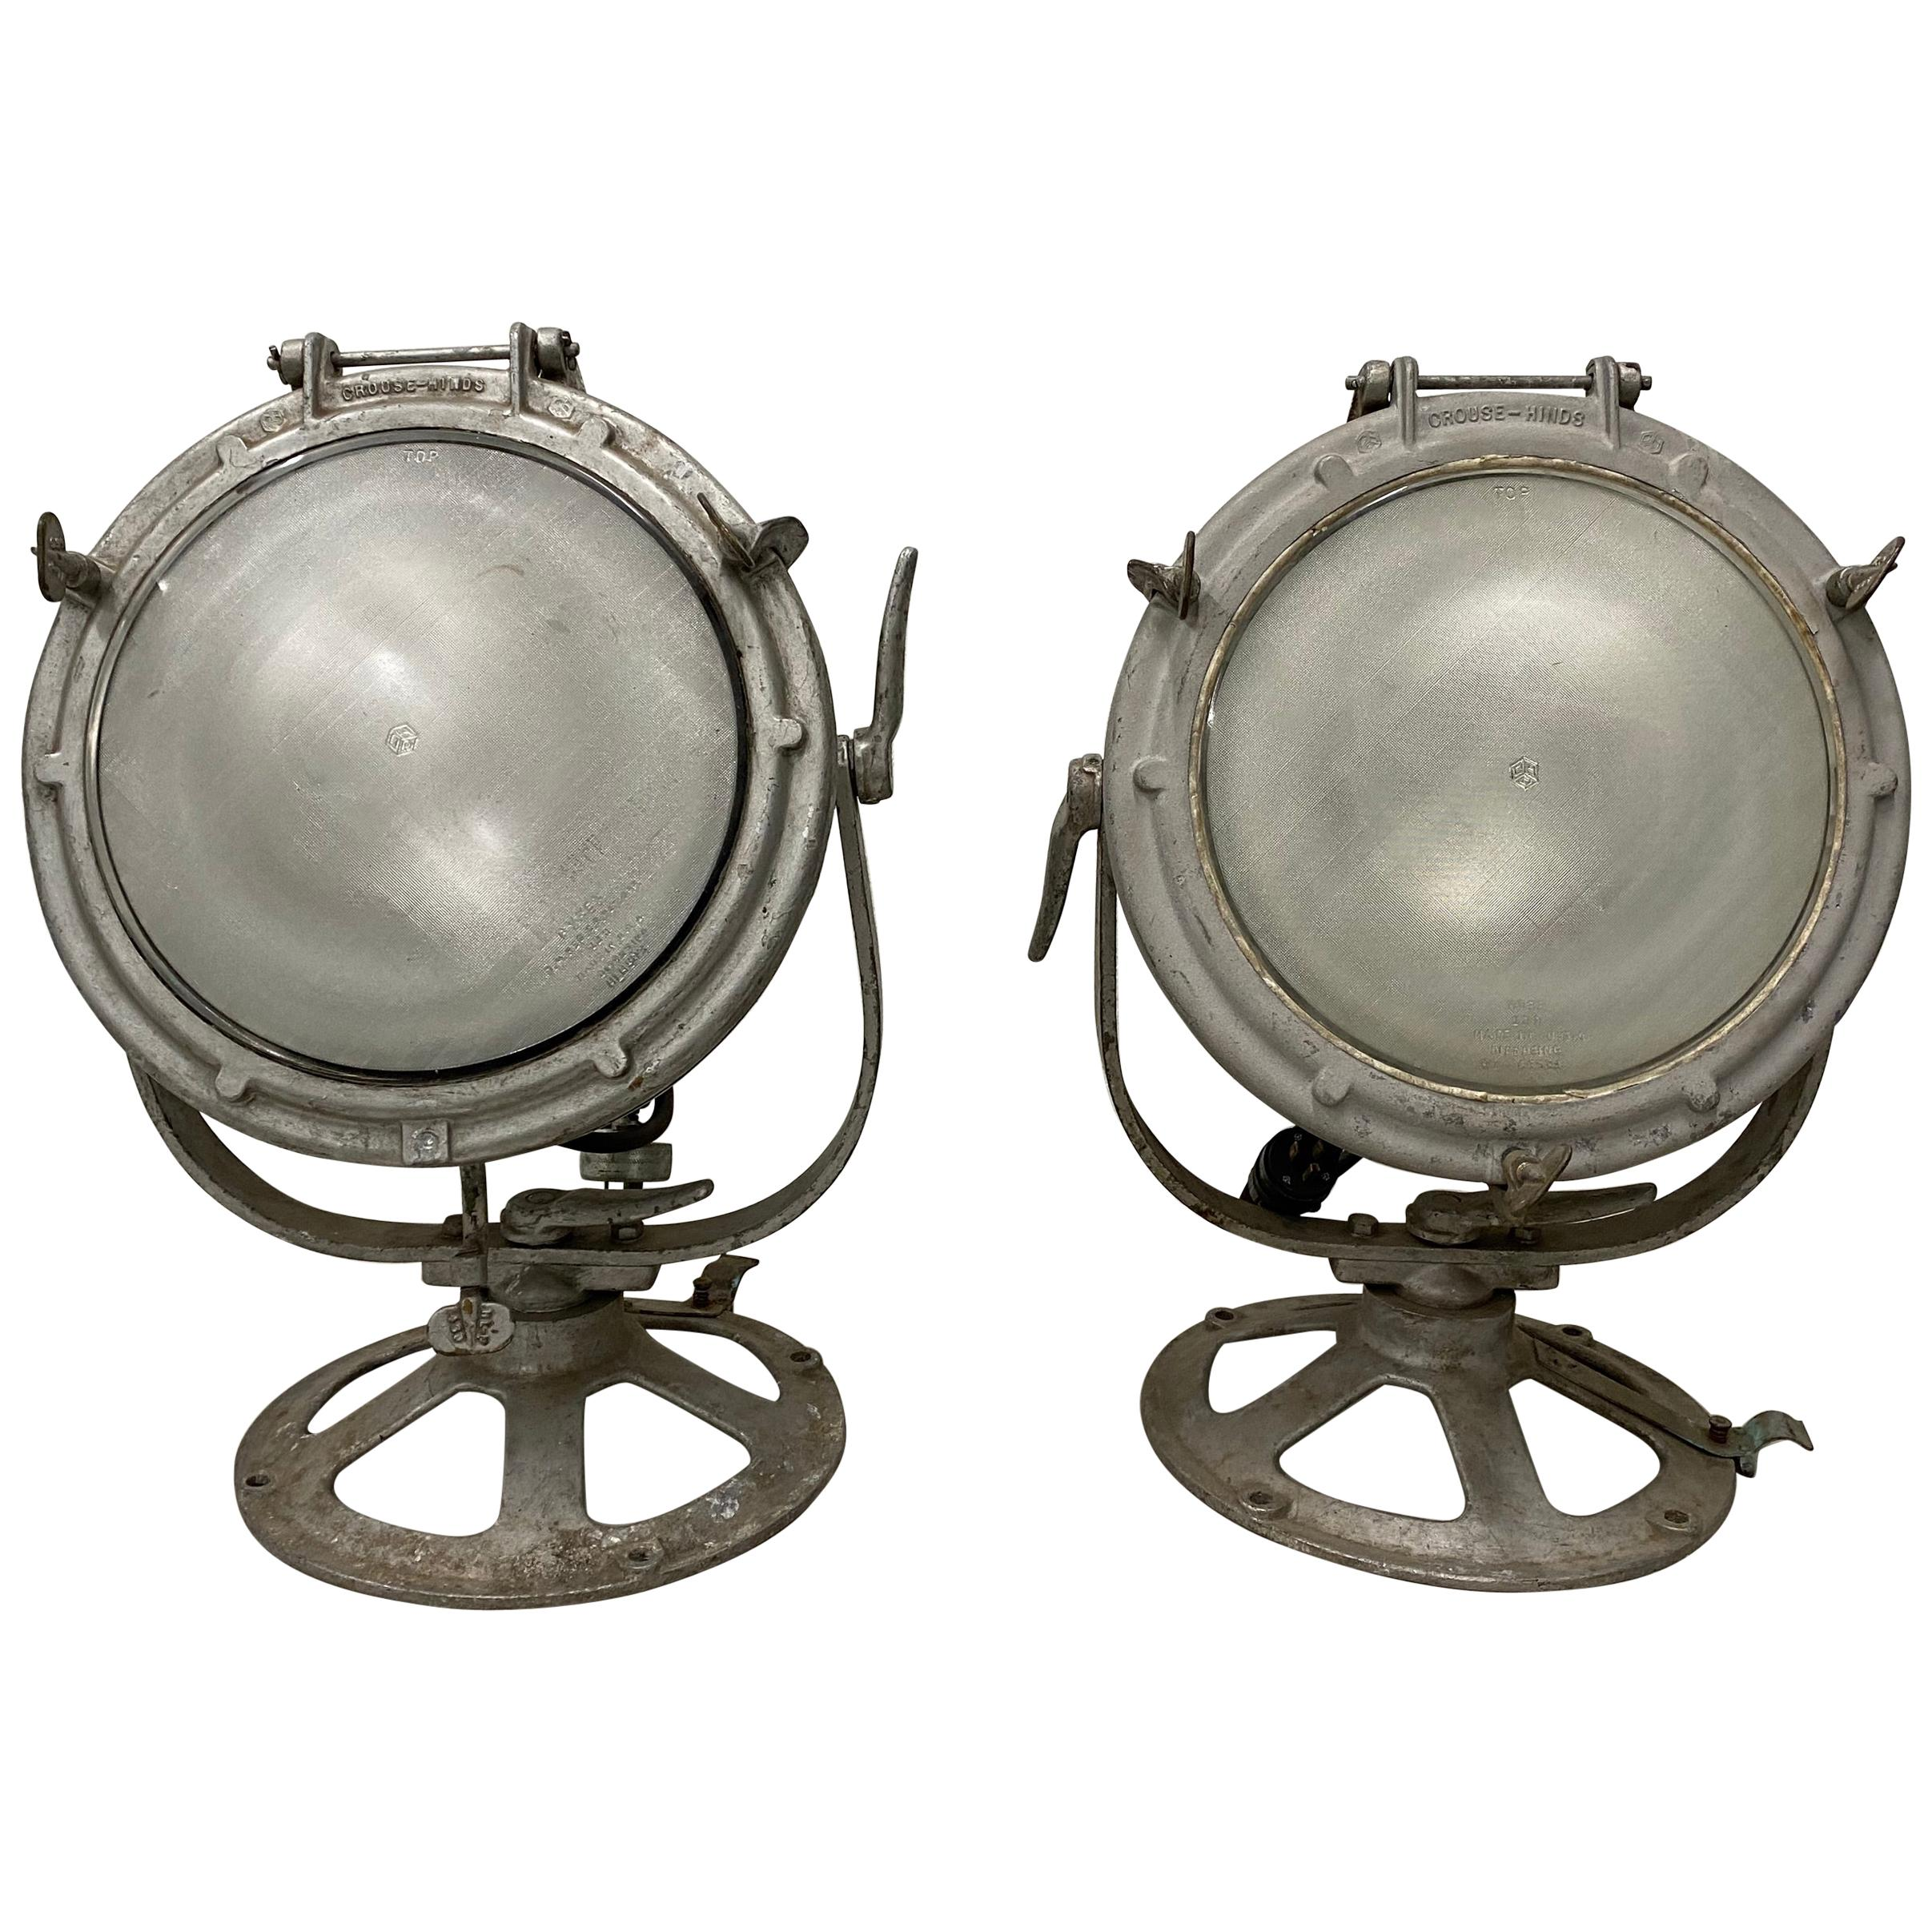 Pair of Vintage Crouse-Hinds Nautical Searchlights, circa 1930